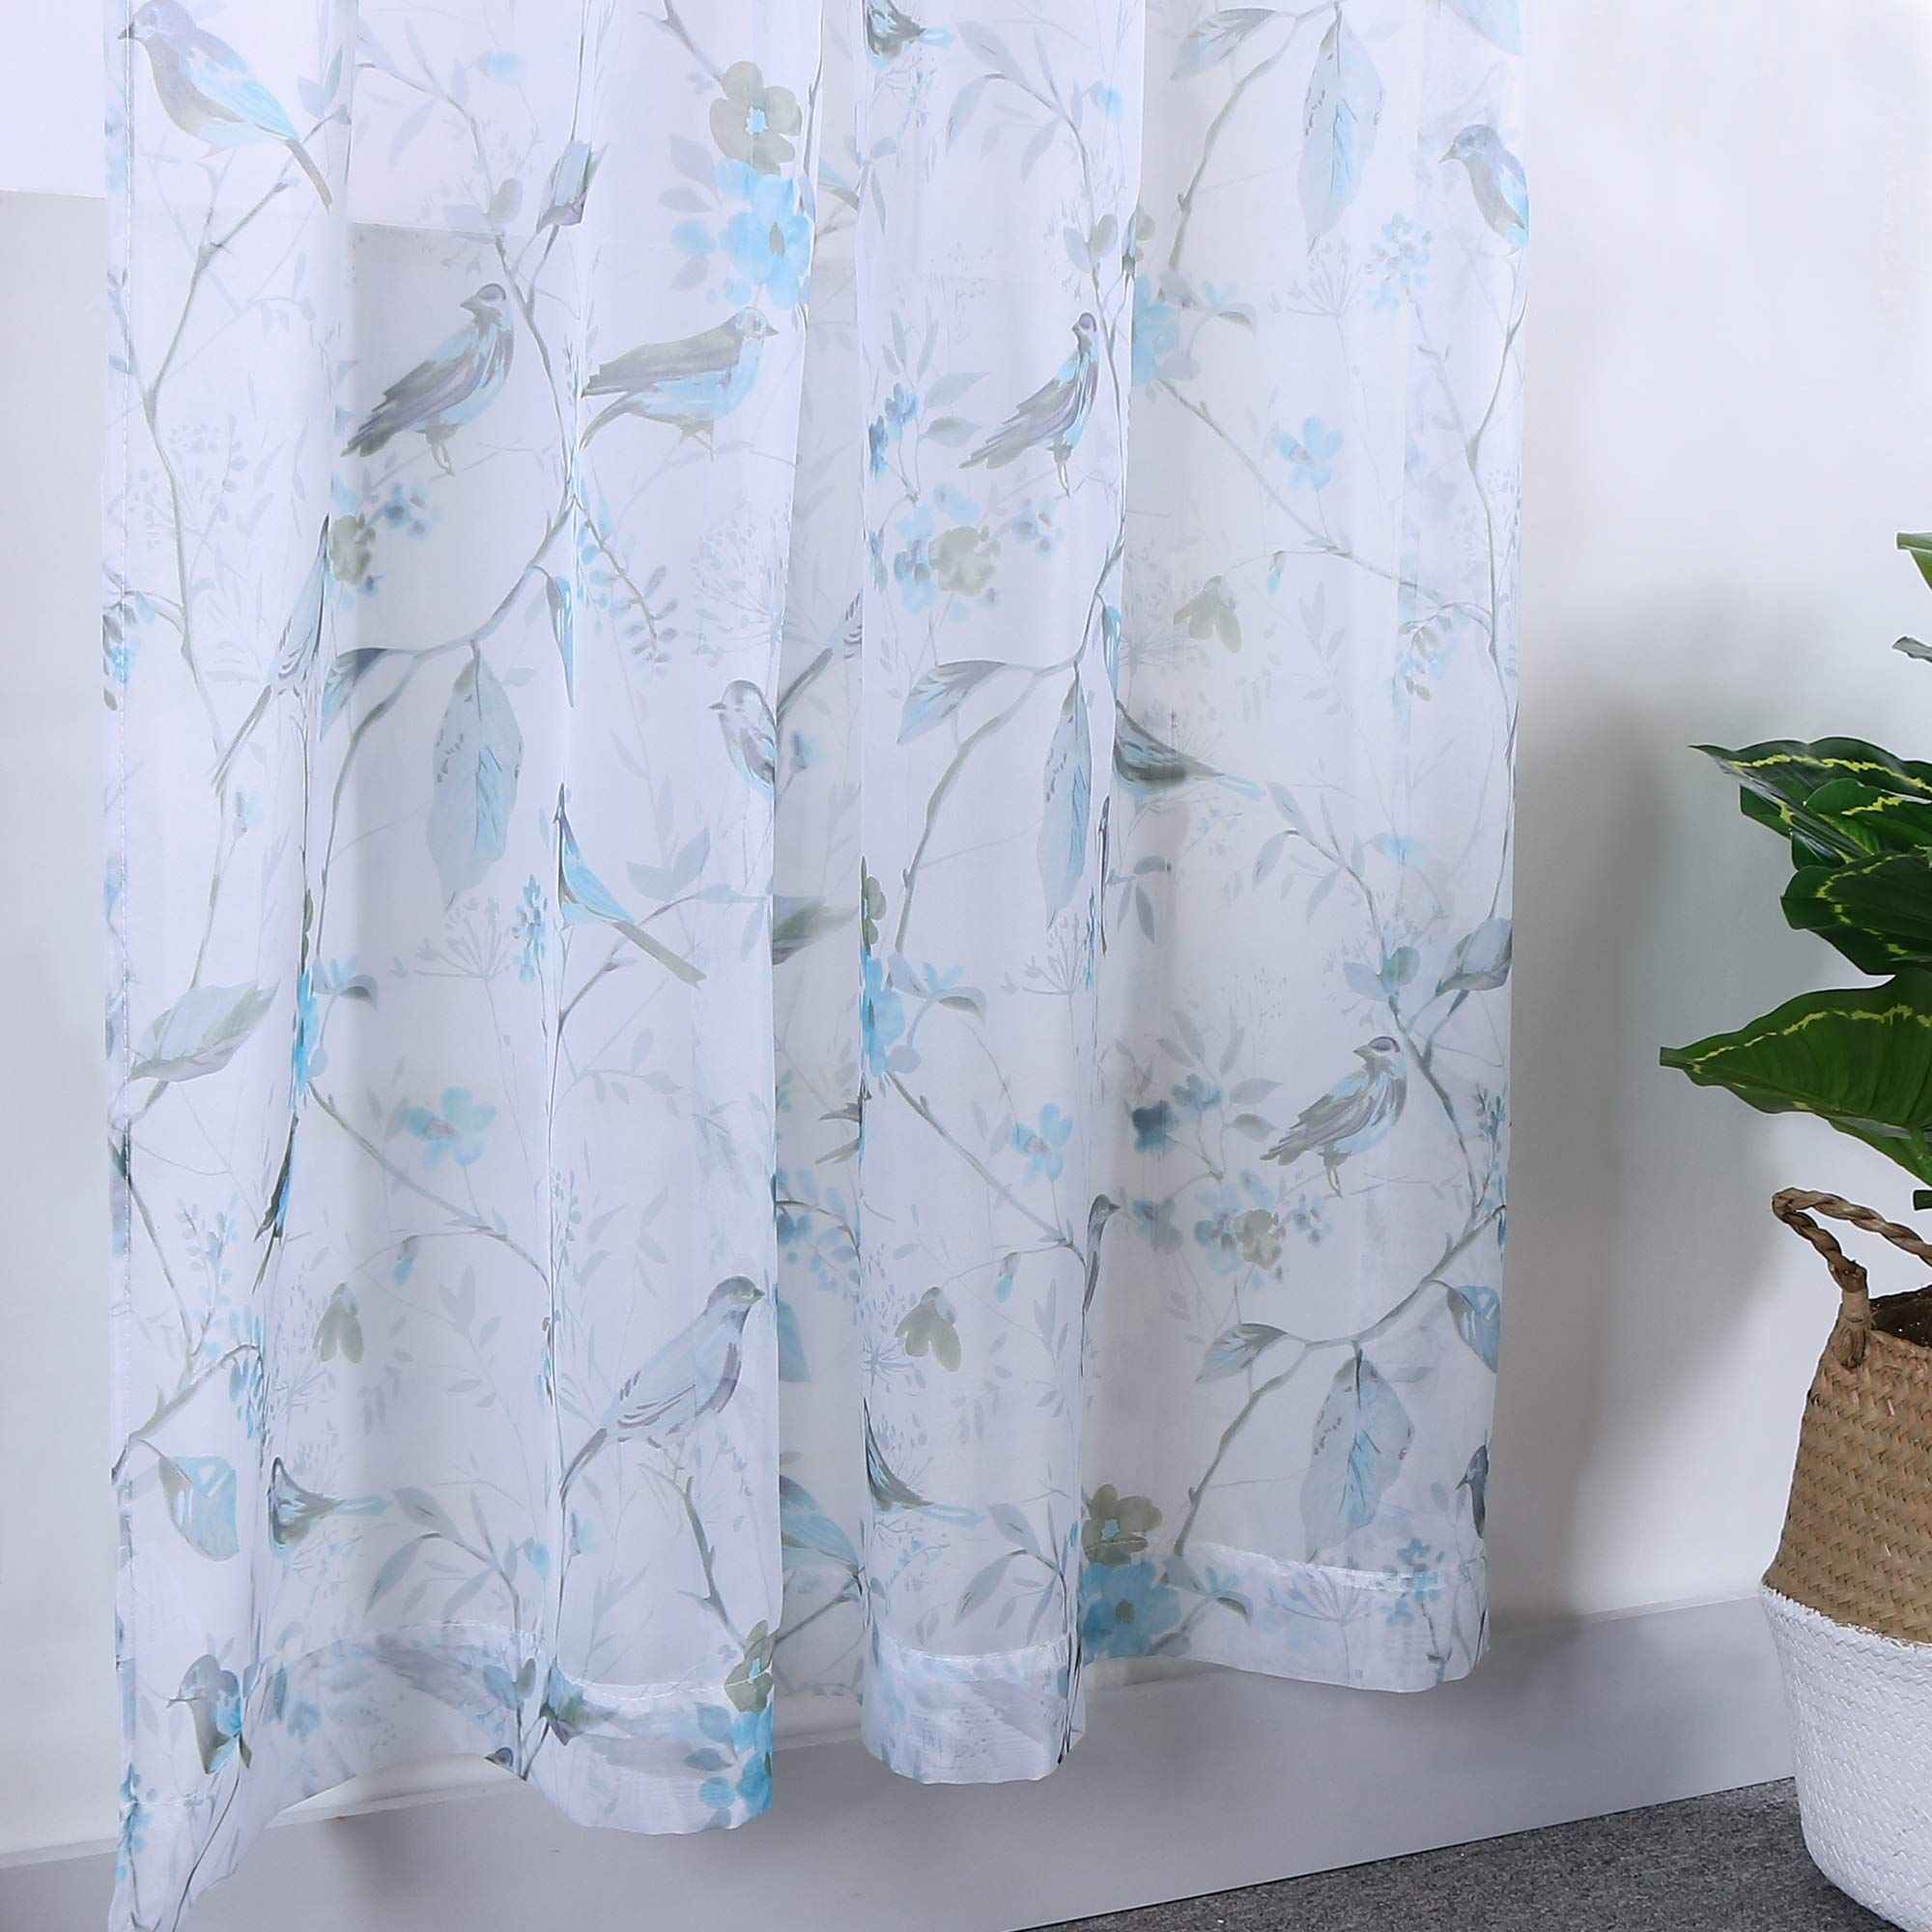 Holking Sheer Window Curtains Drapes Panelsblue Birds Printed Voile Sheer Curtains For Living Room 52 Curtains Living Room Sheer Curtain Panels Sheer Curtains